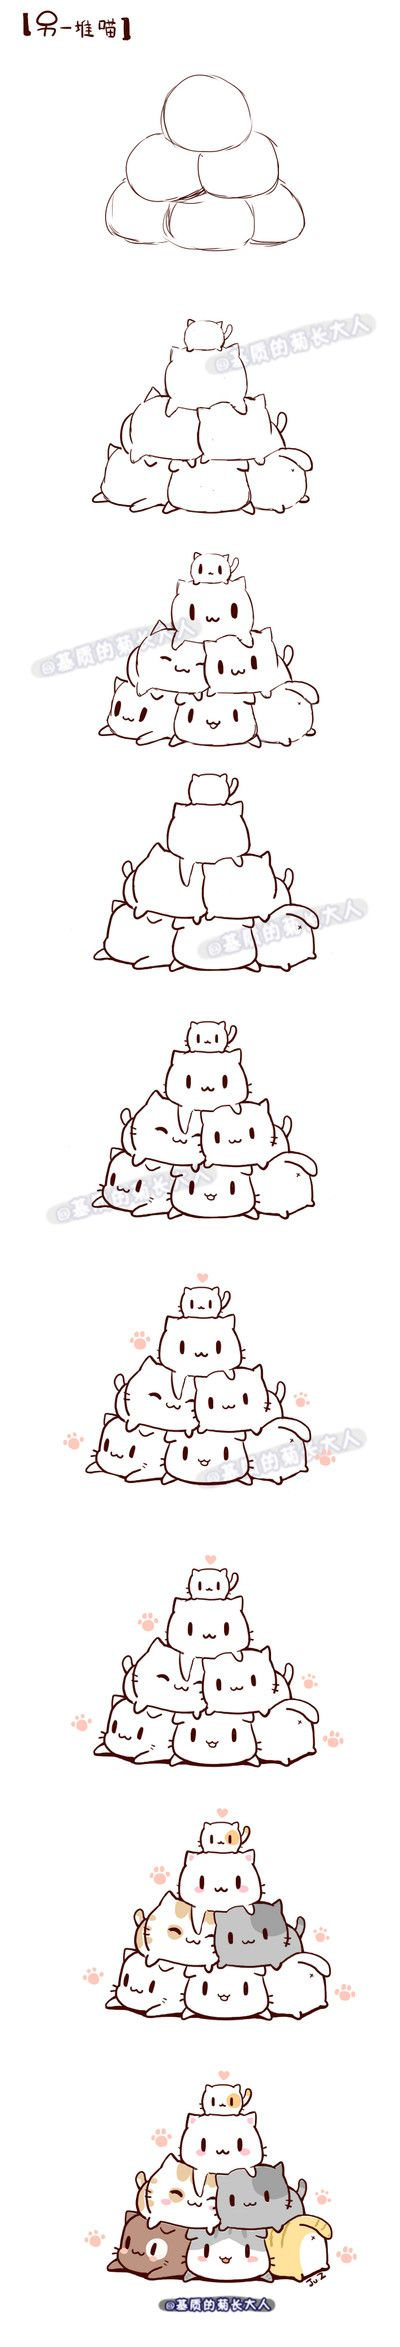 KITTY PILE!!!!!                                                                                                                                                                                 More